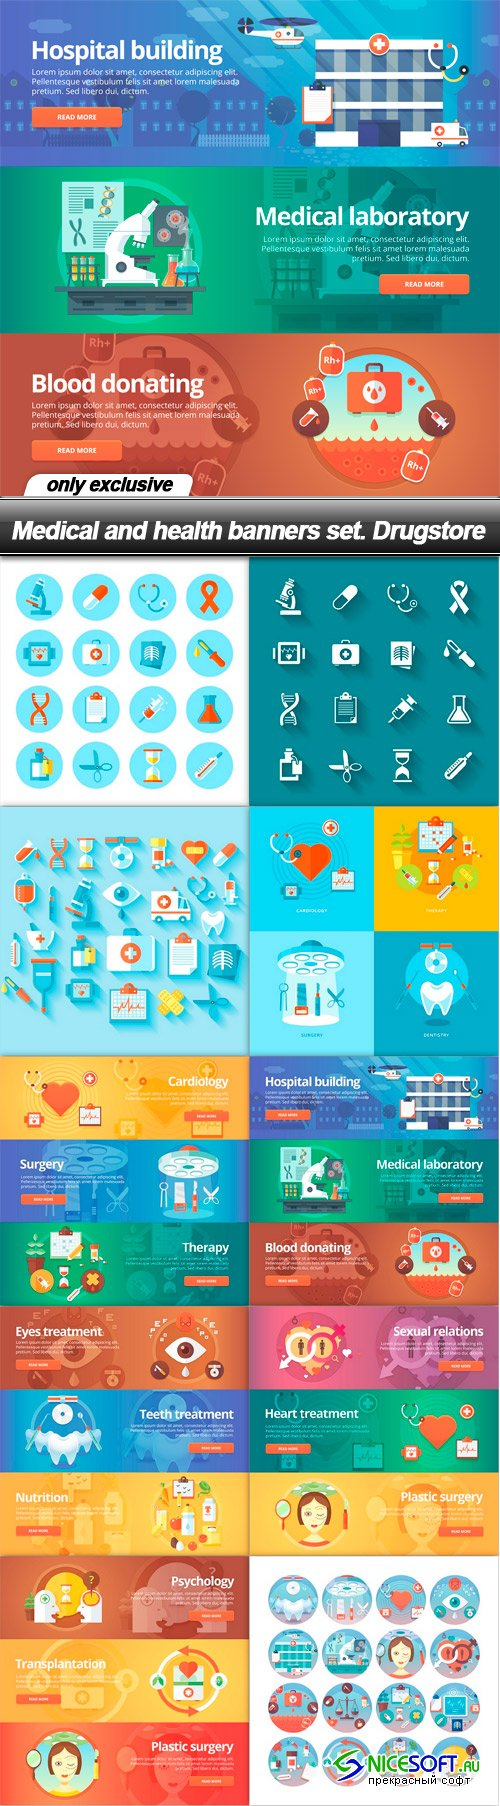 Medical and health banners set. Drugstore